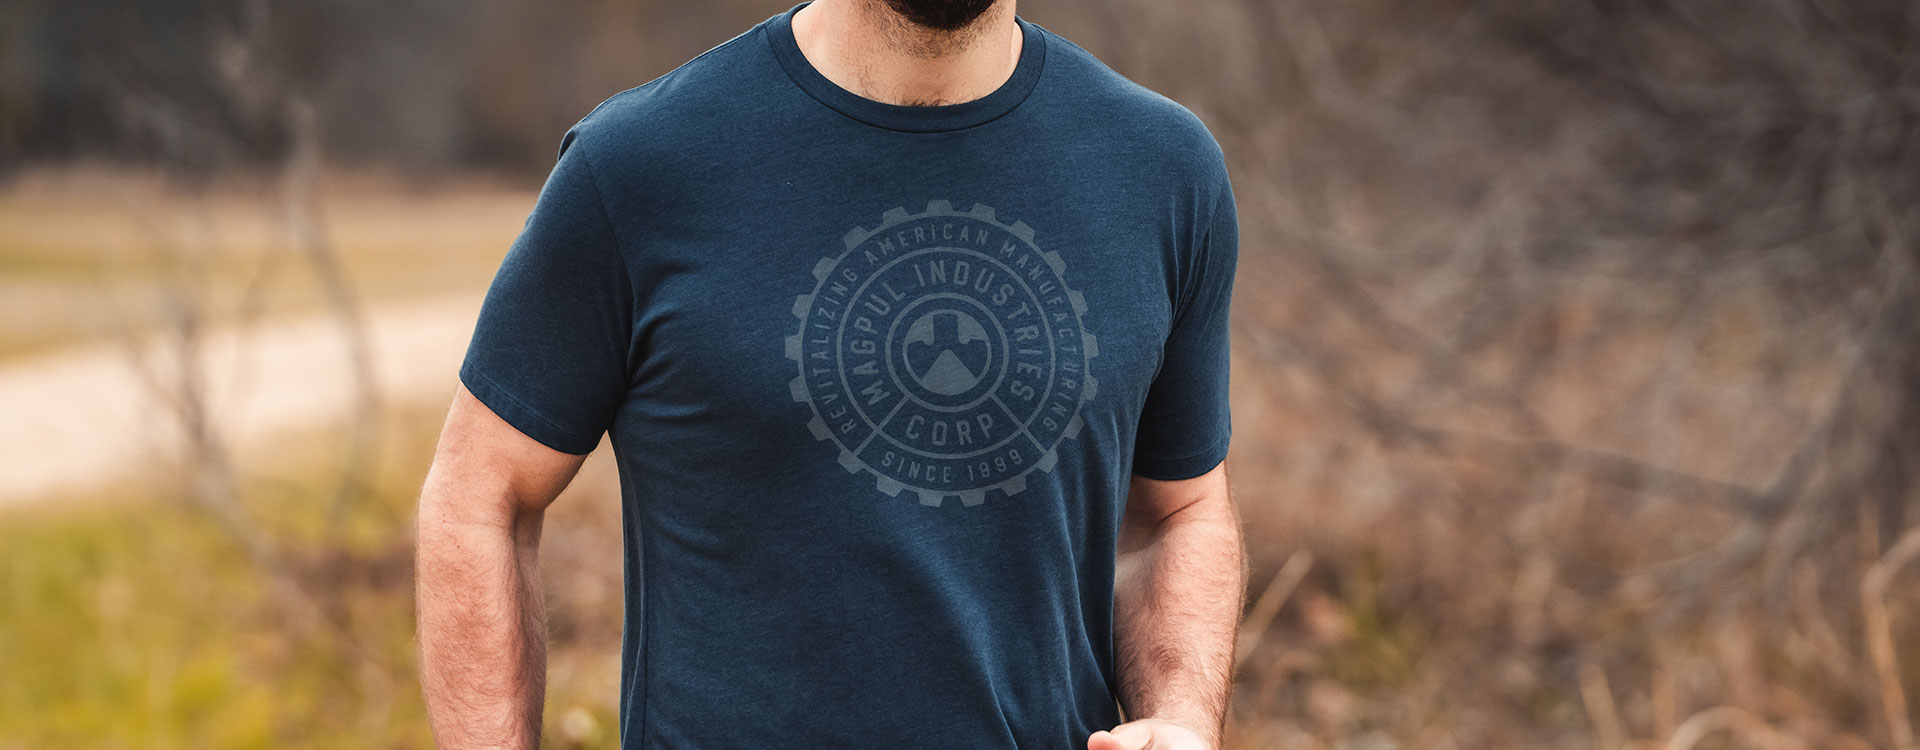 Magpul Manufacturing Blend T-Shirt worn by jogger outdoors with grass and brush background